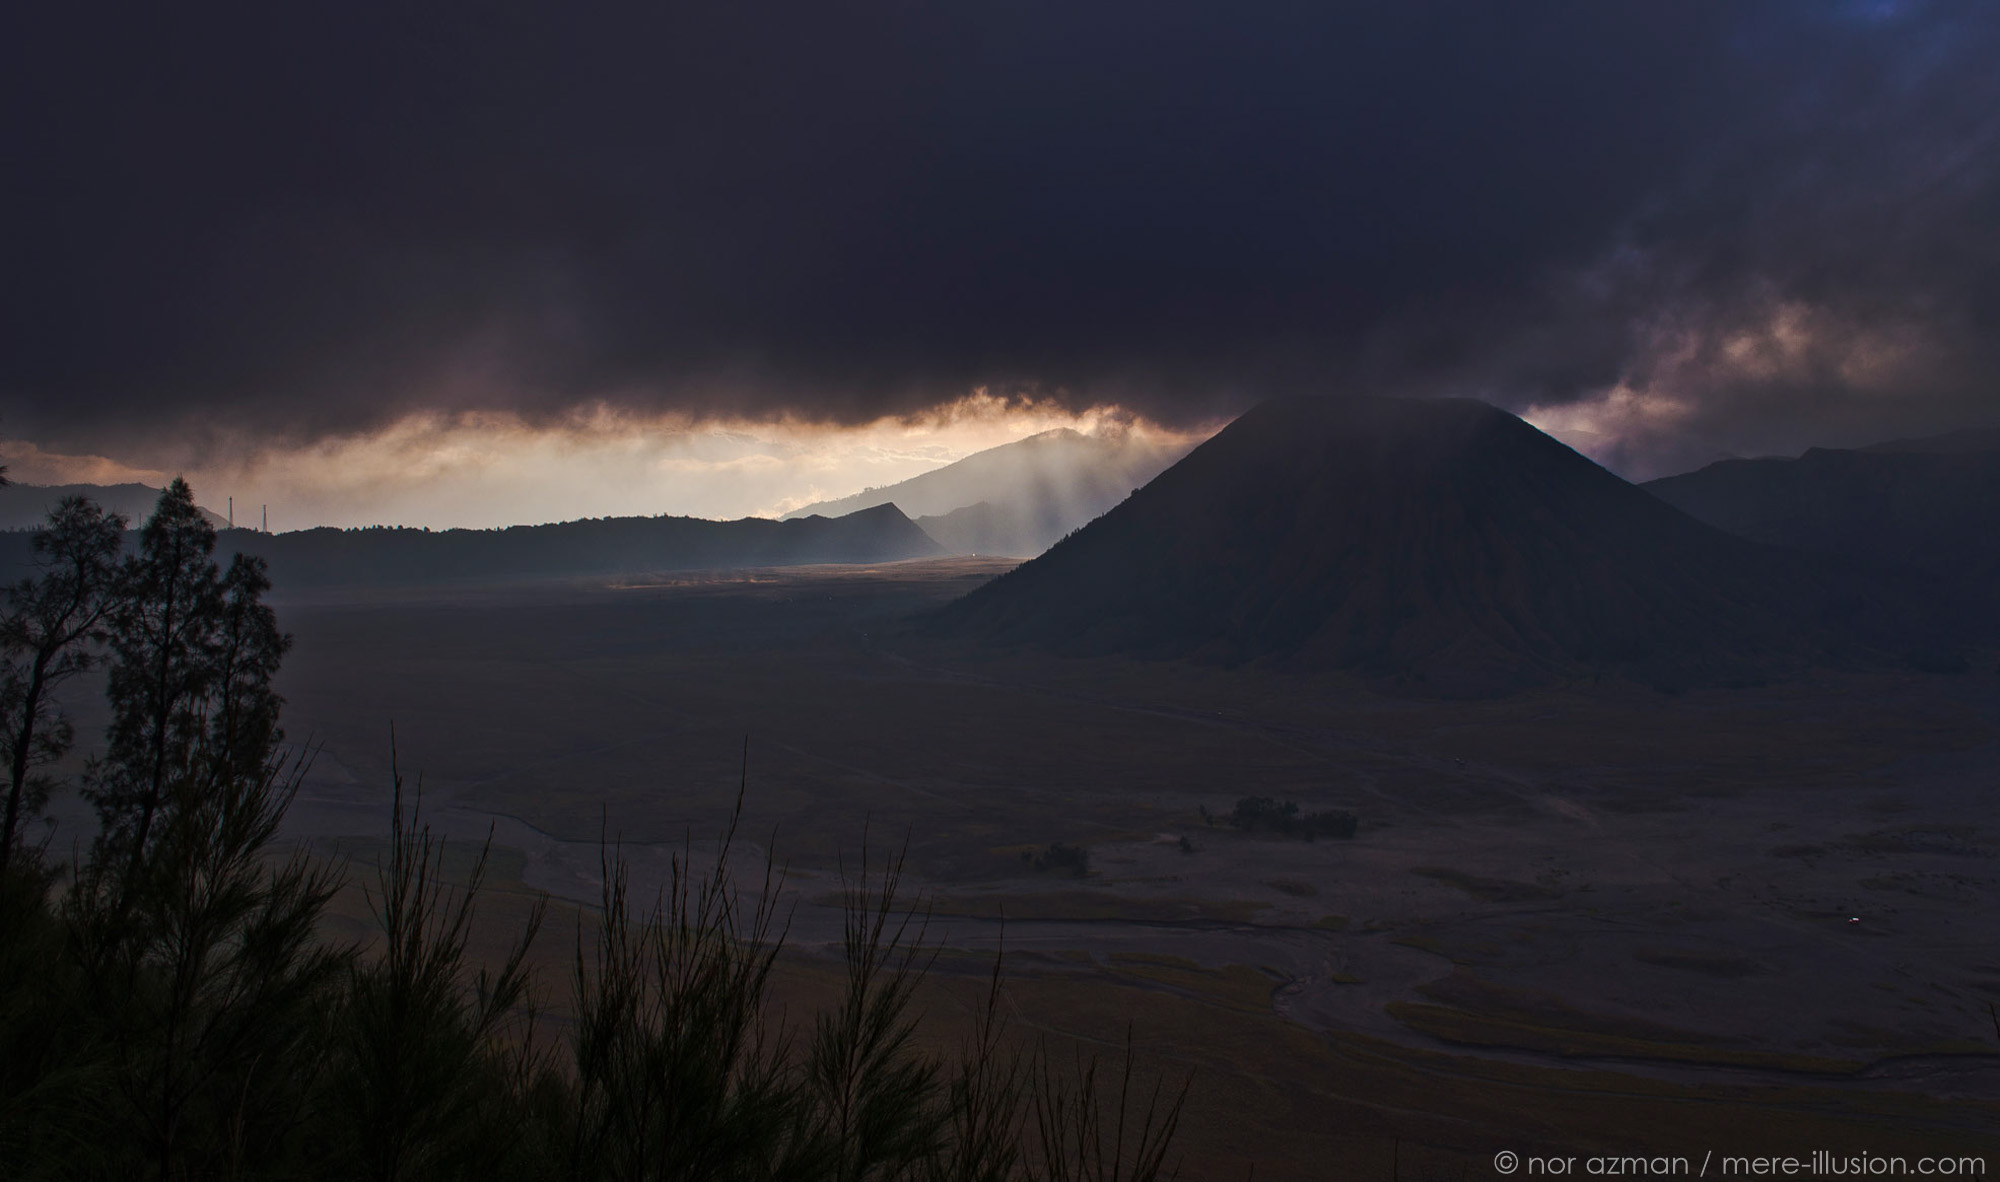 mount bromo, indonesia by nor azman